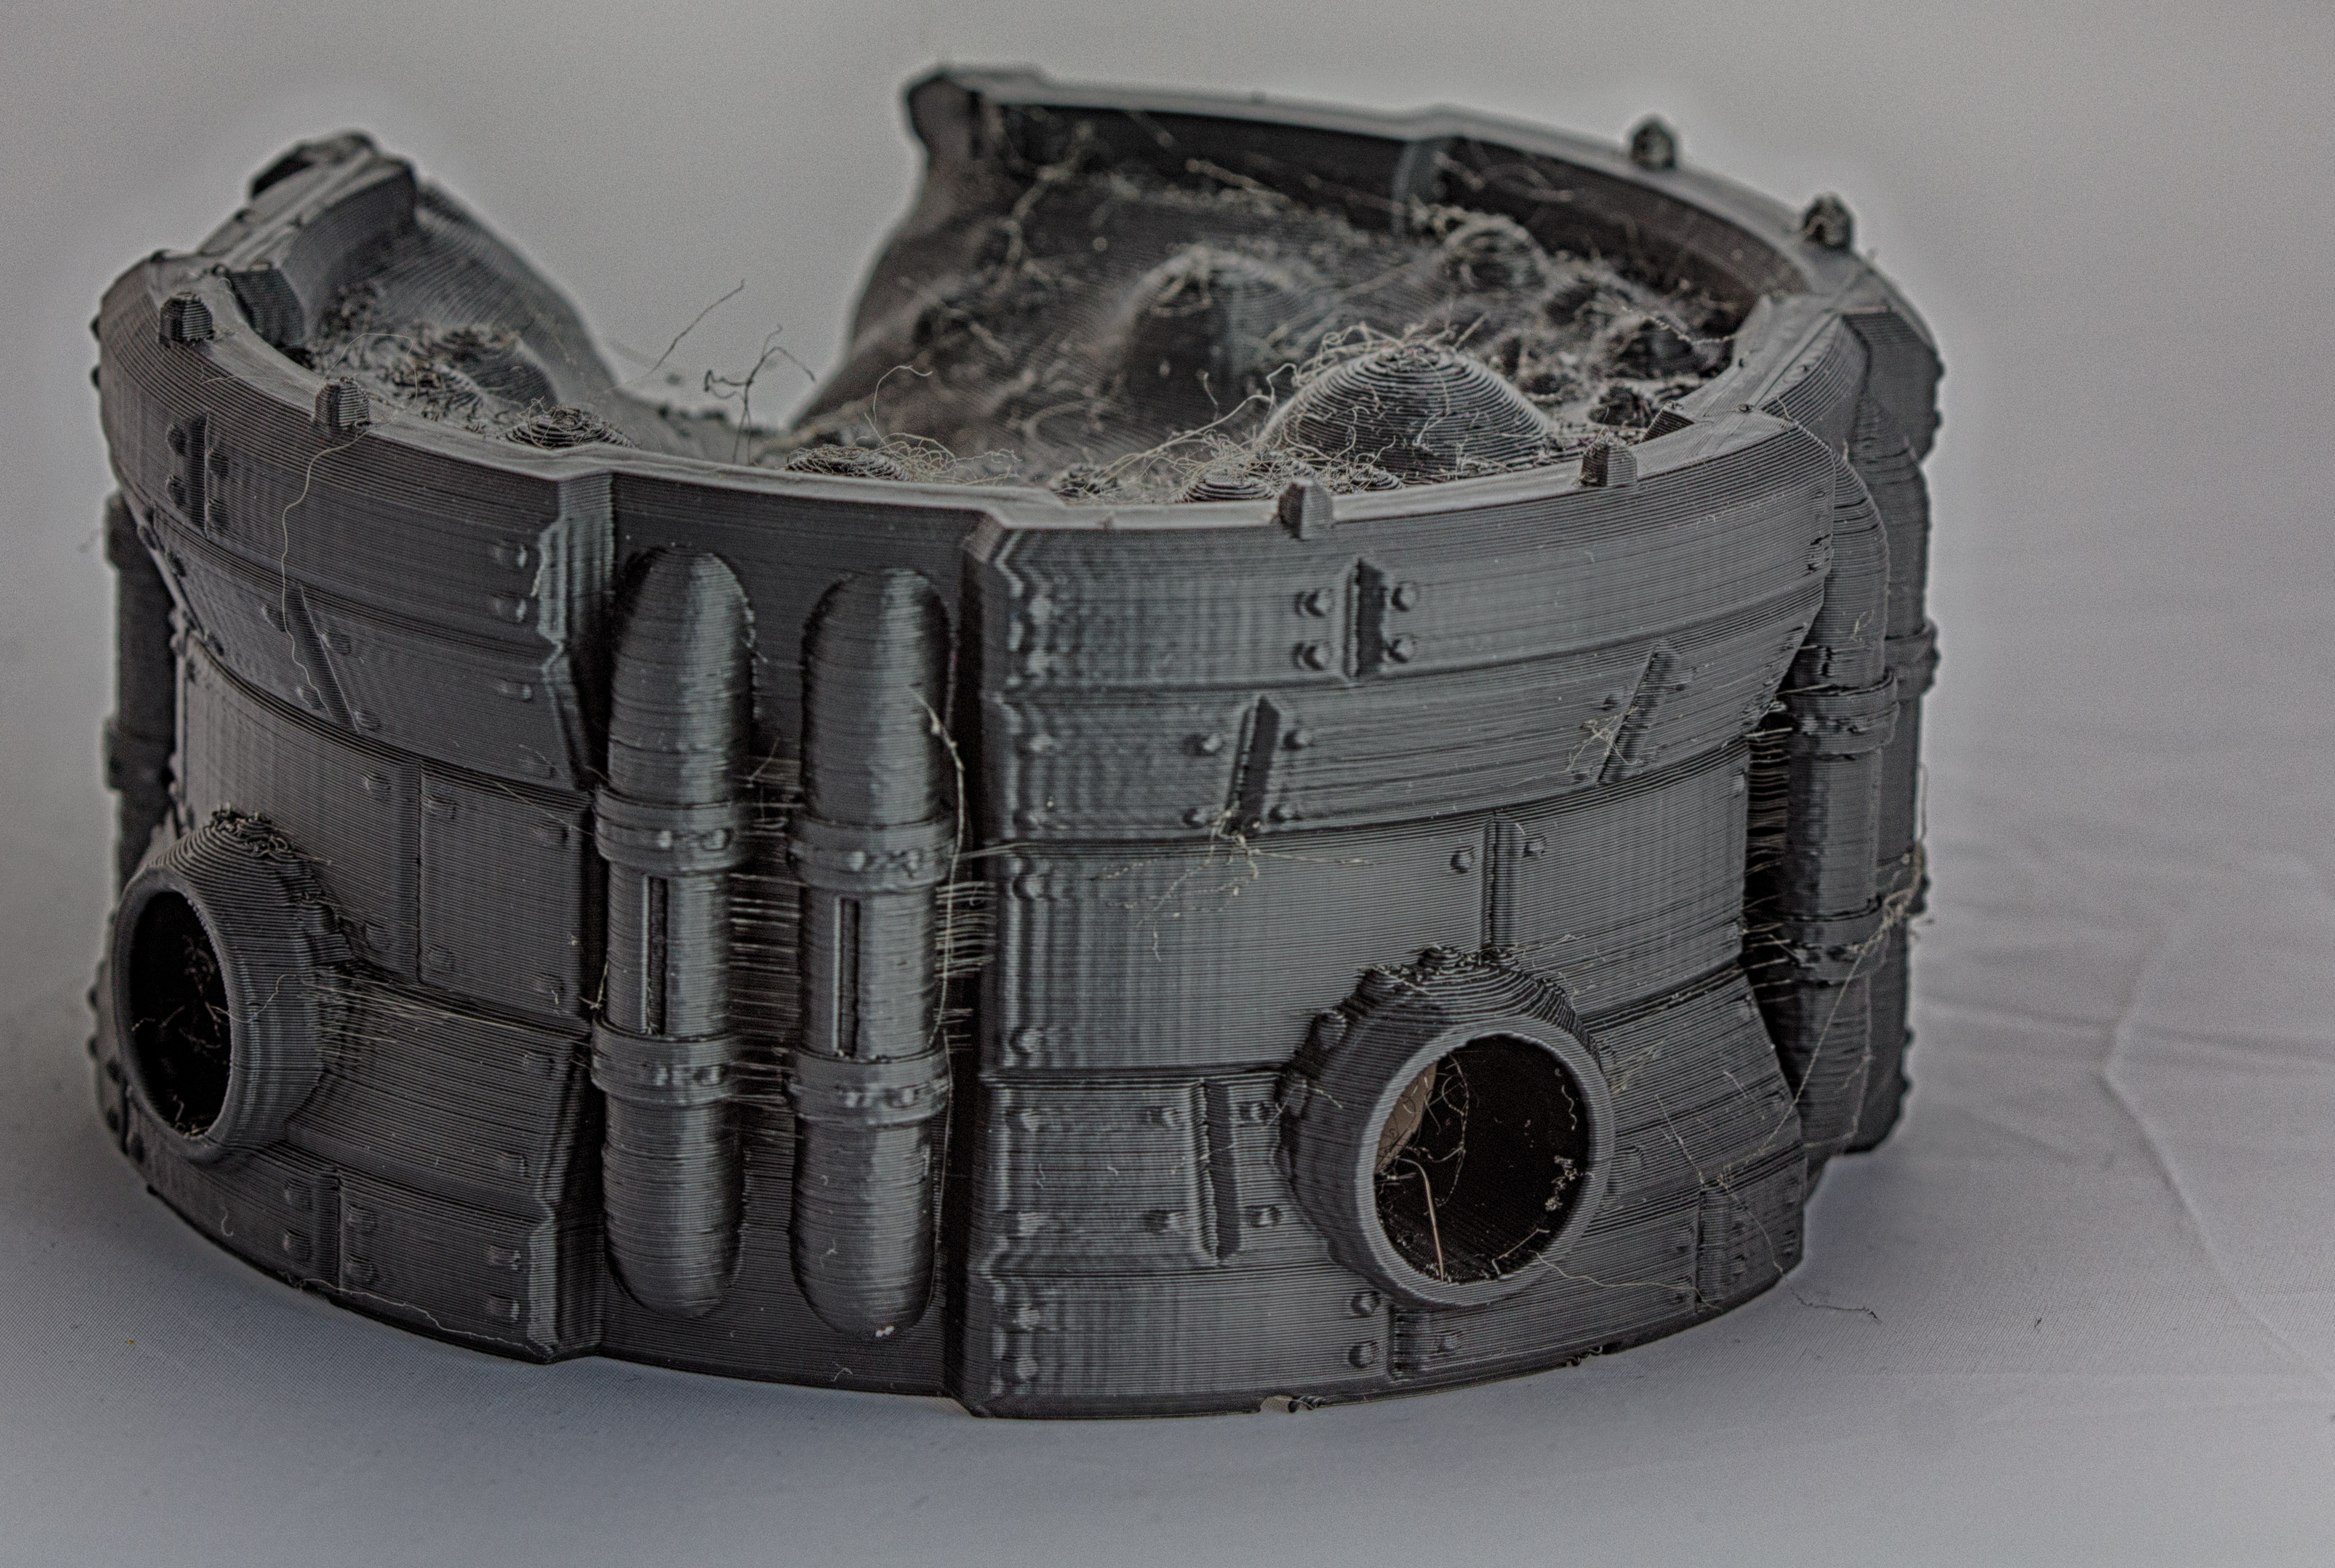 Wargame terrain - printed CR10s (8 of 10)